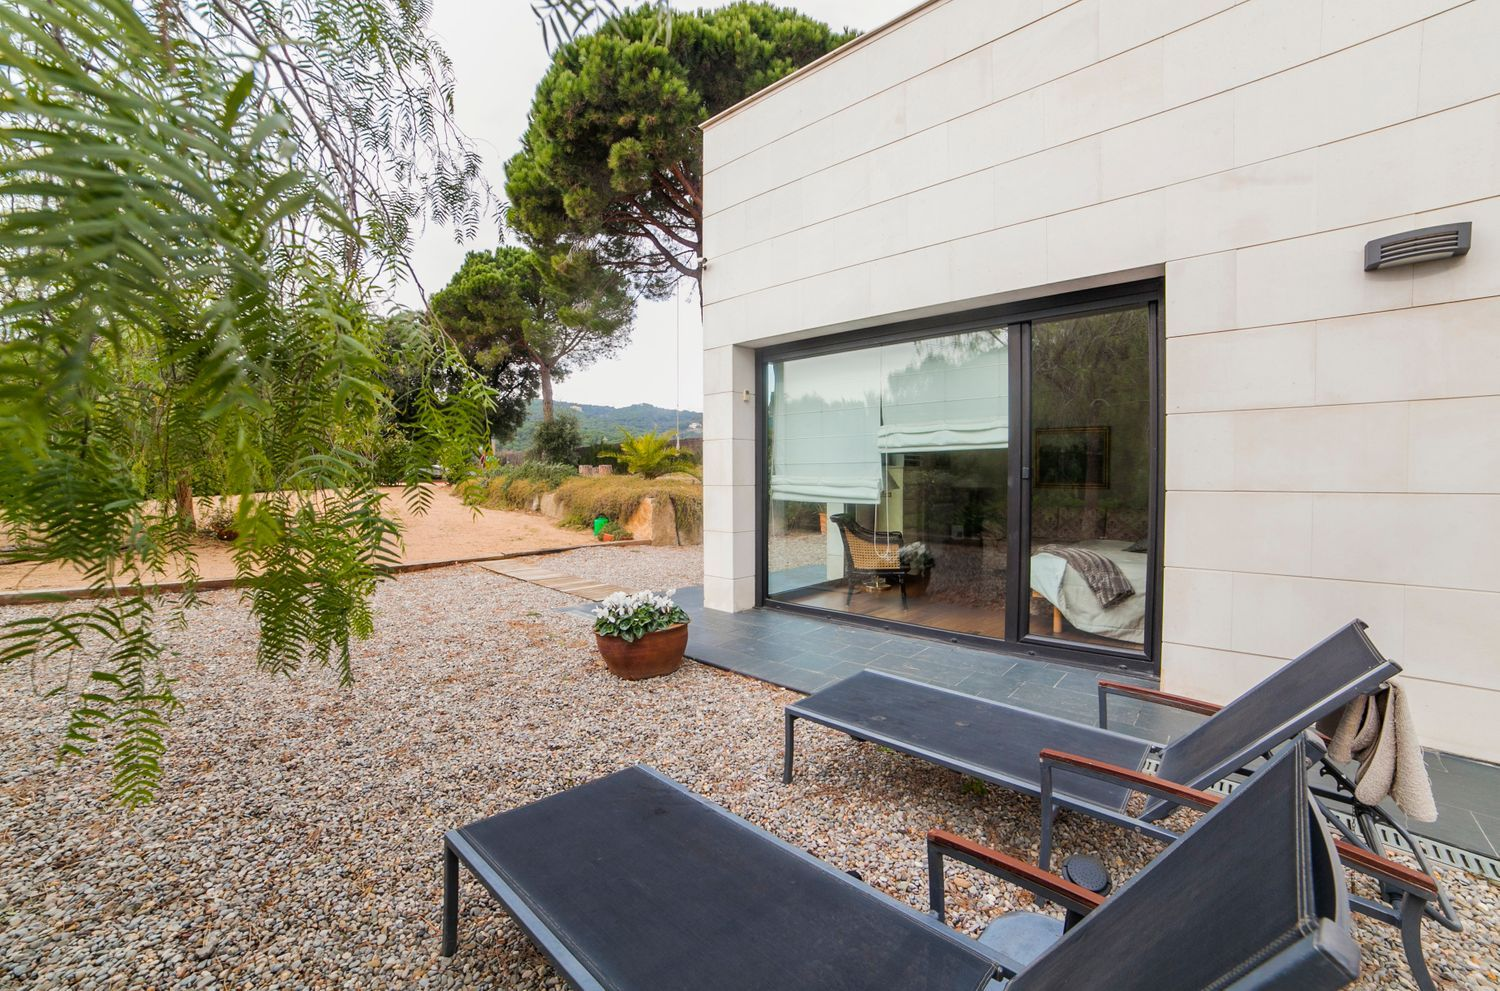 4 bedroom chalet for sale in sant andreu de llavaneres